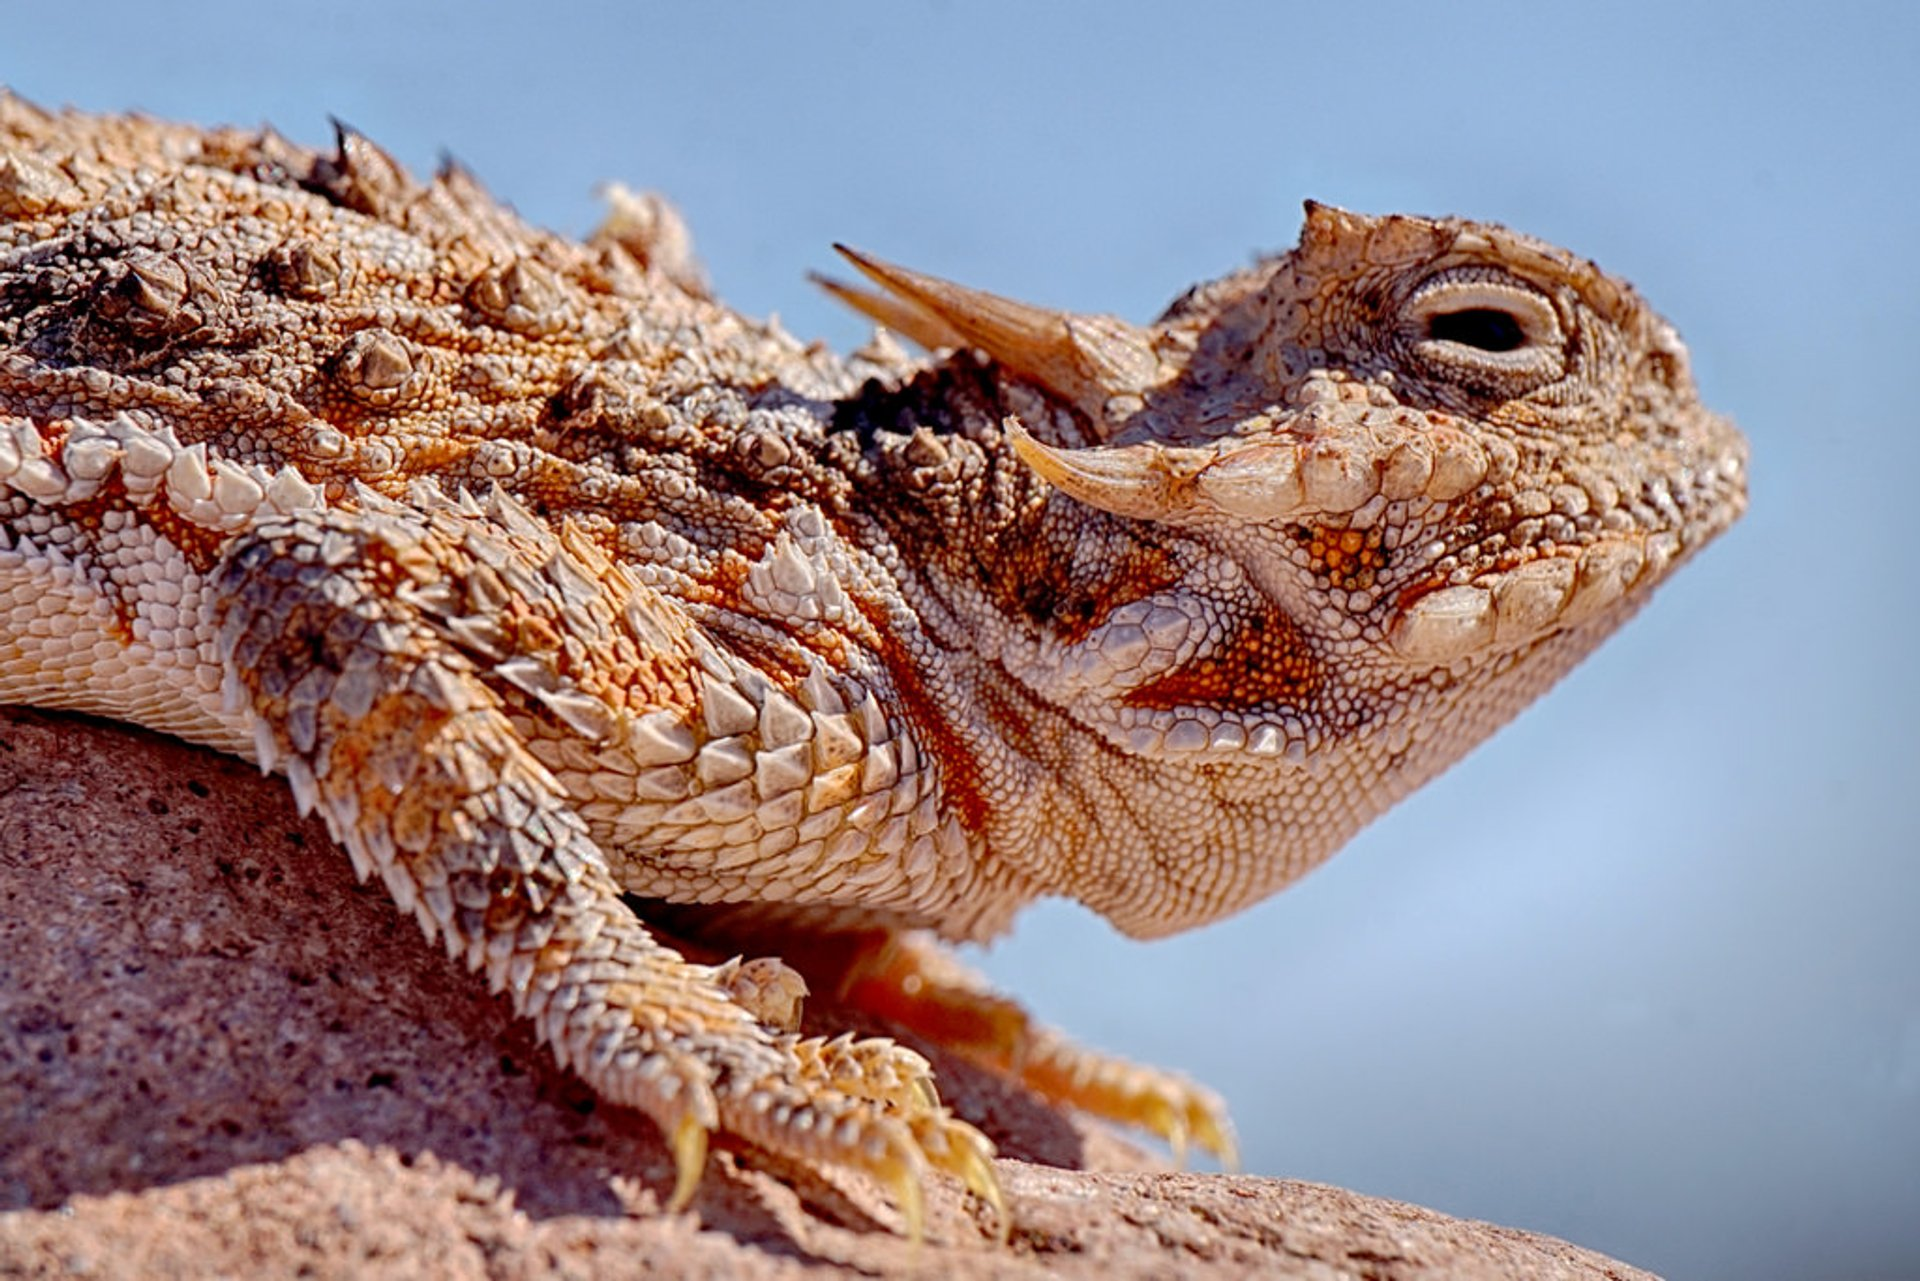 Blood-Shooting Lizards in Arizona 2020 - Best Time